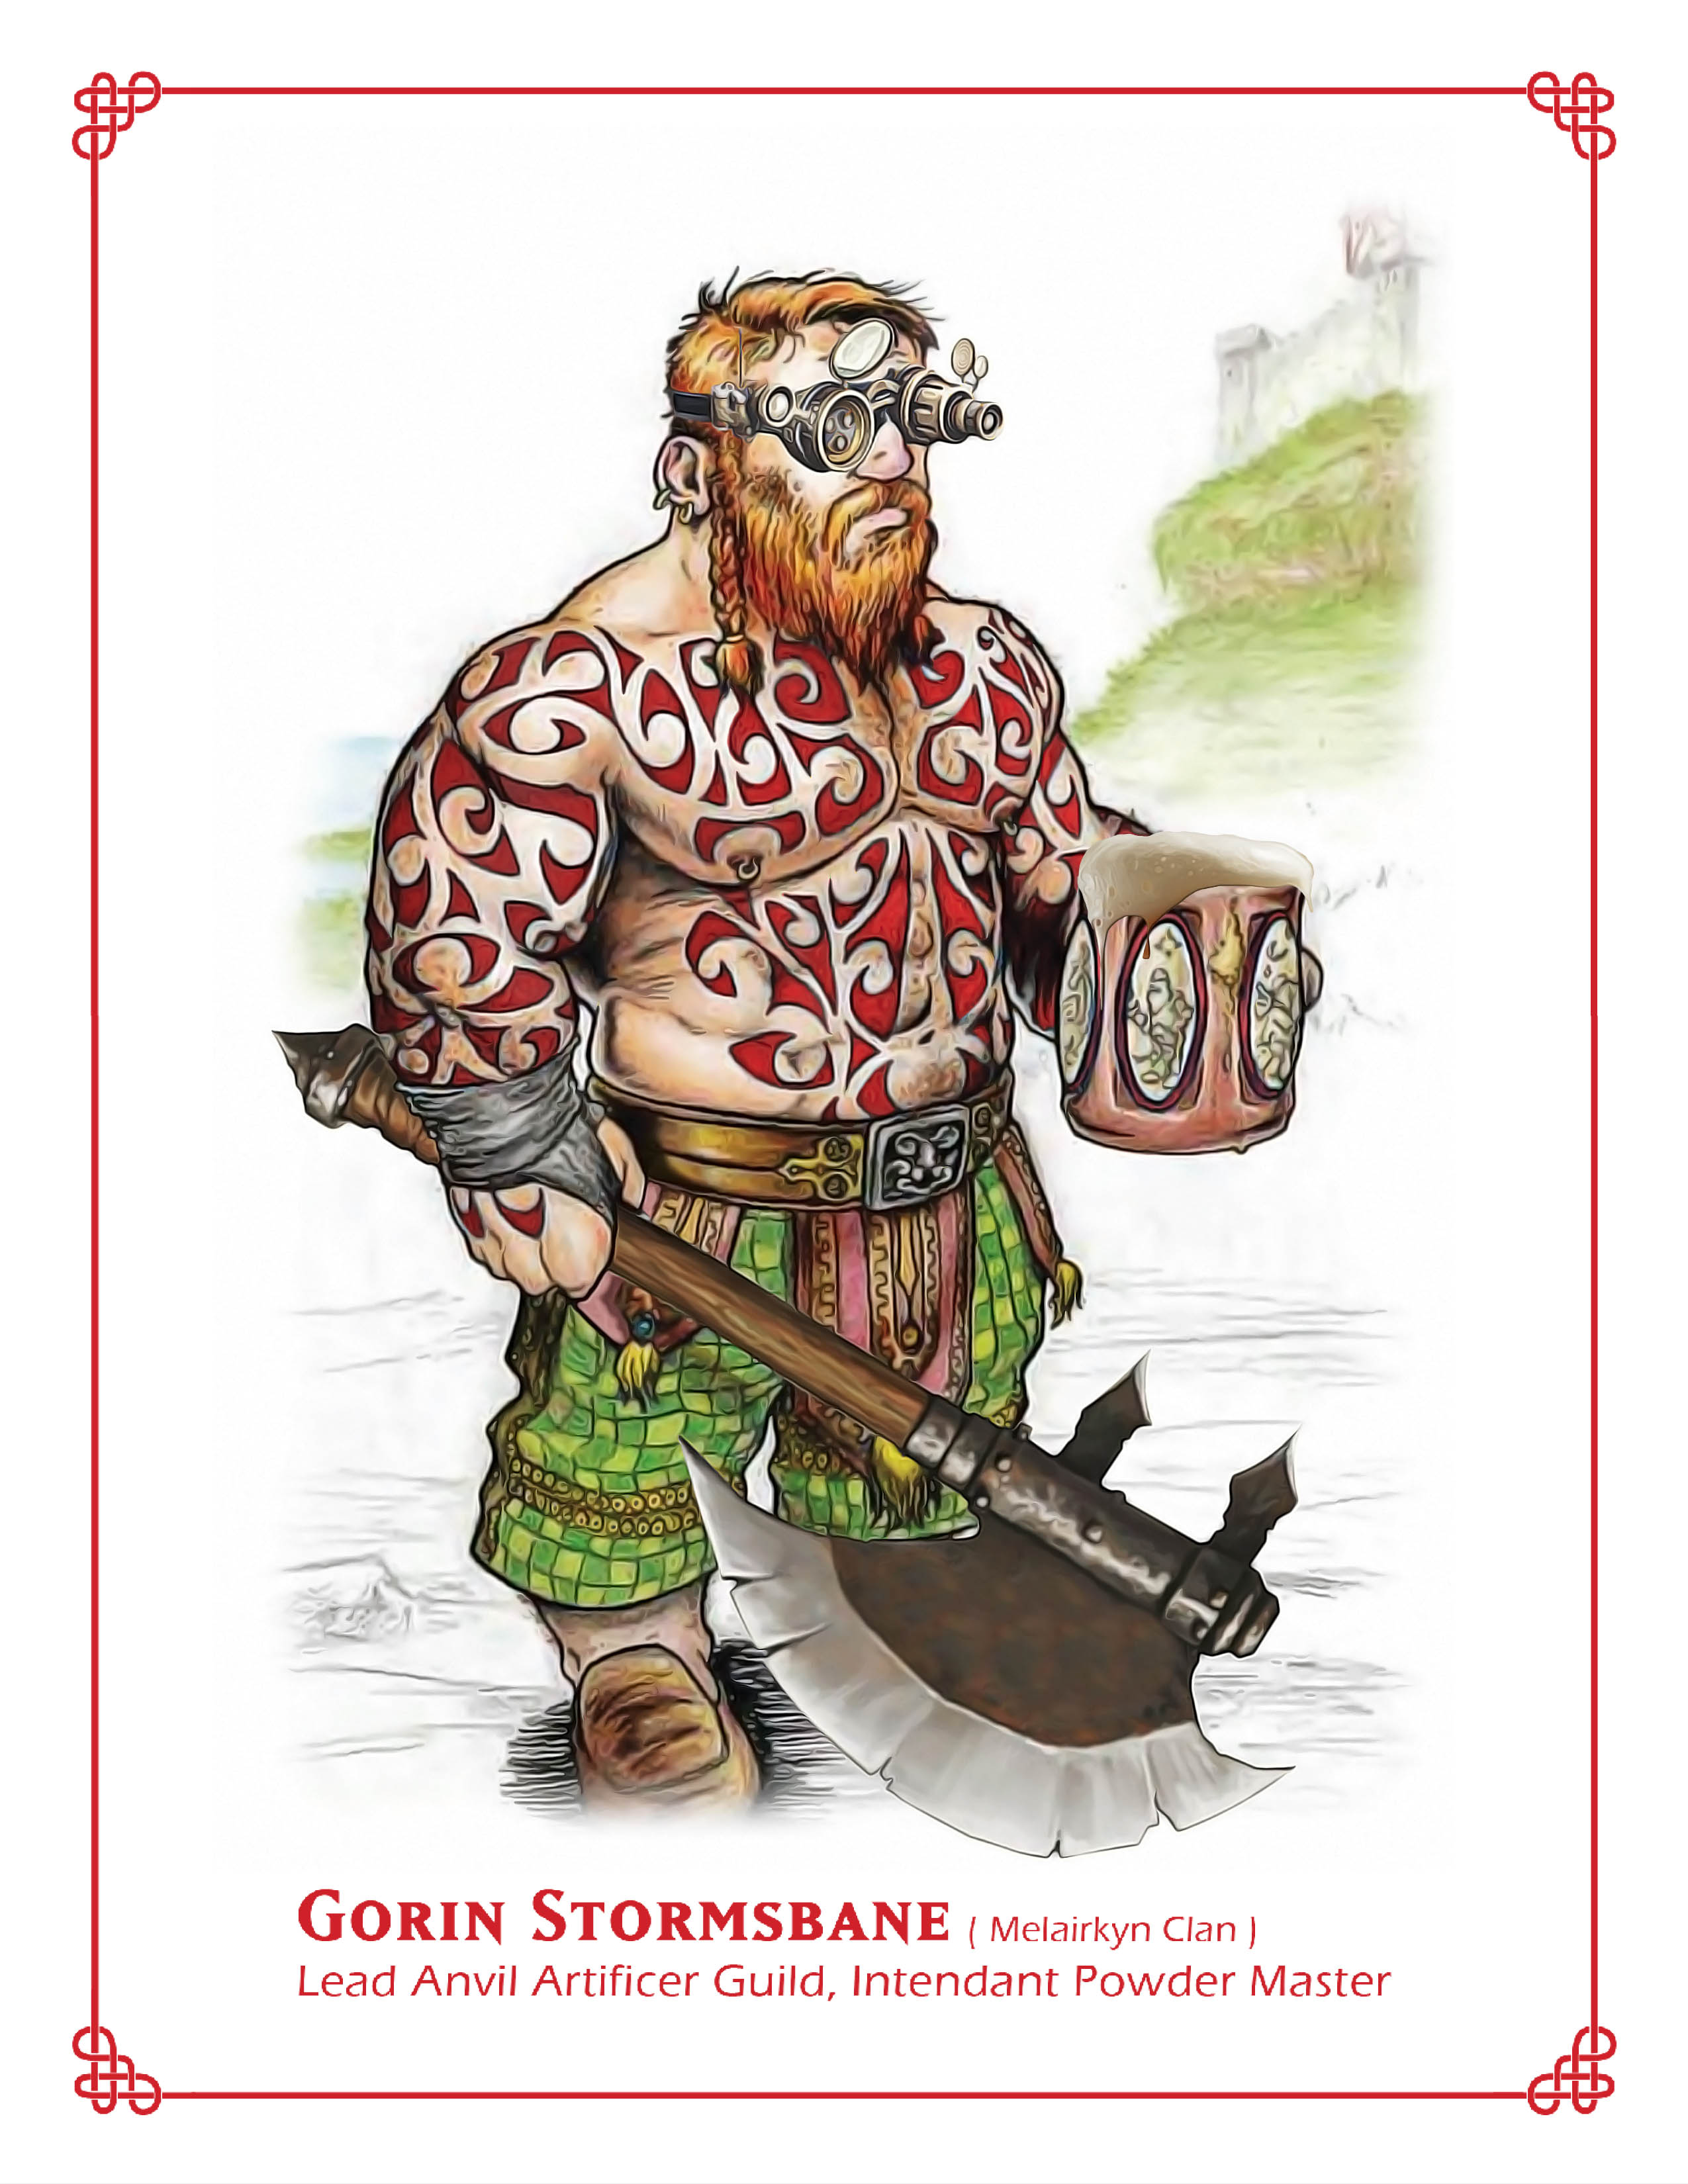 Gorin_Stormsbane_WORKING2.jpg